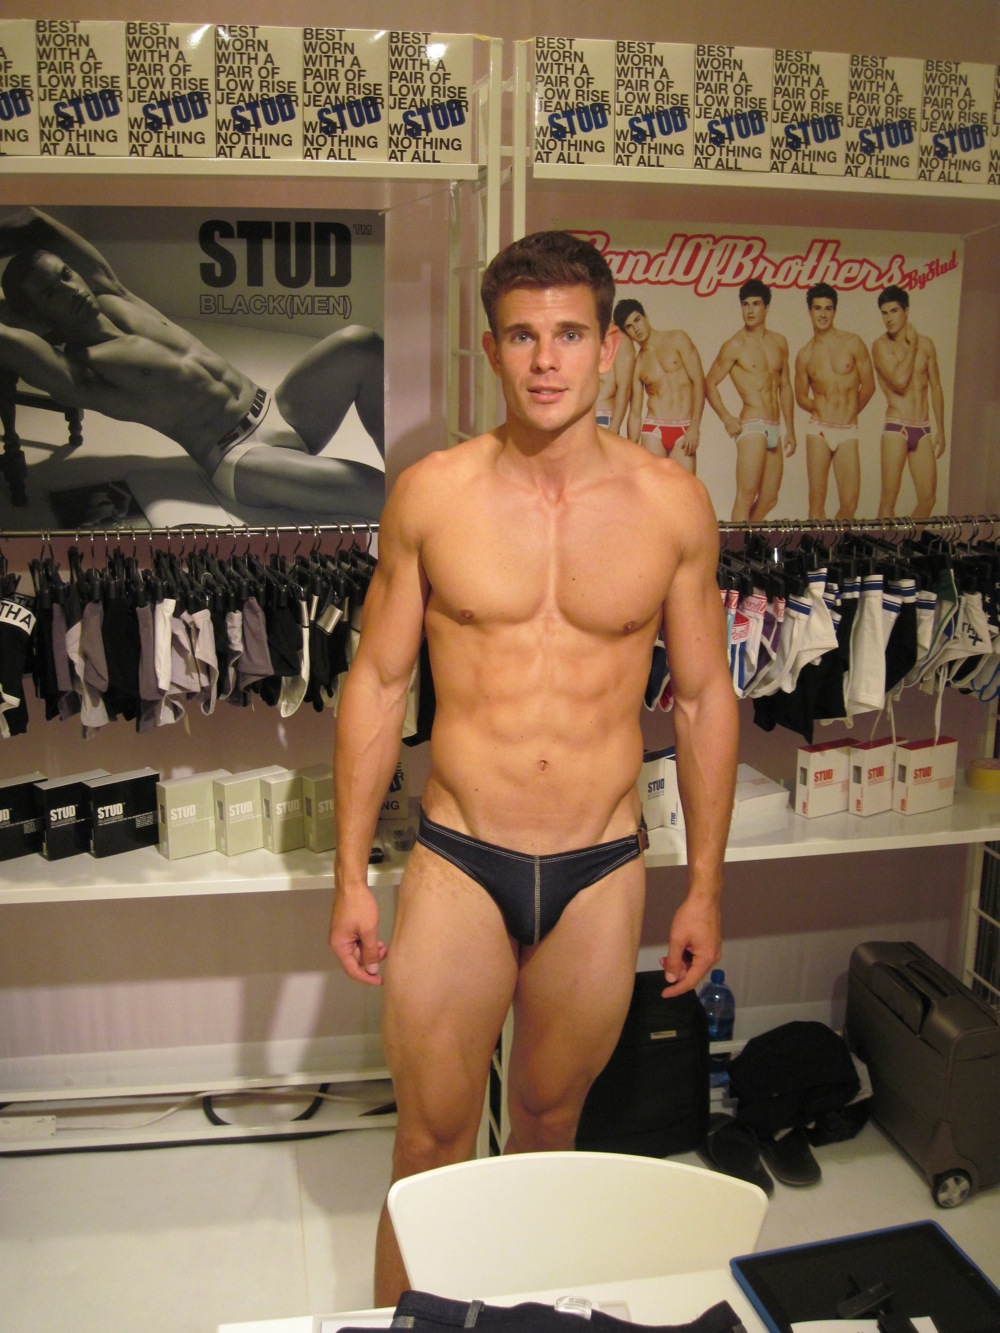 Brief Distraction featuring Stud Underwear from 2012